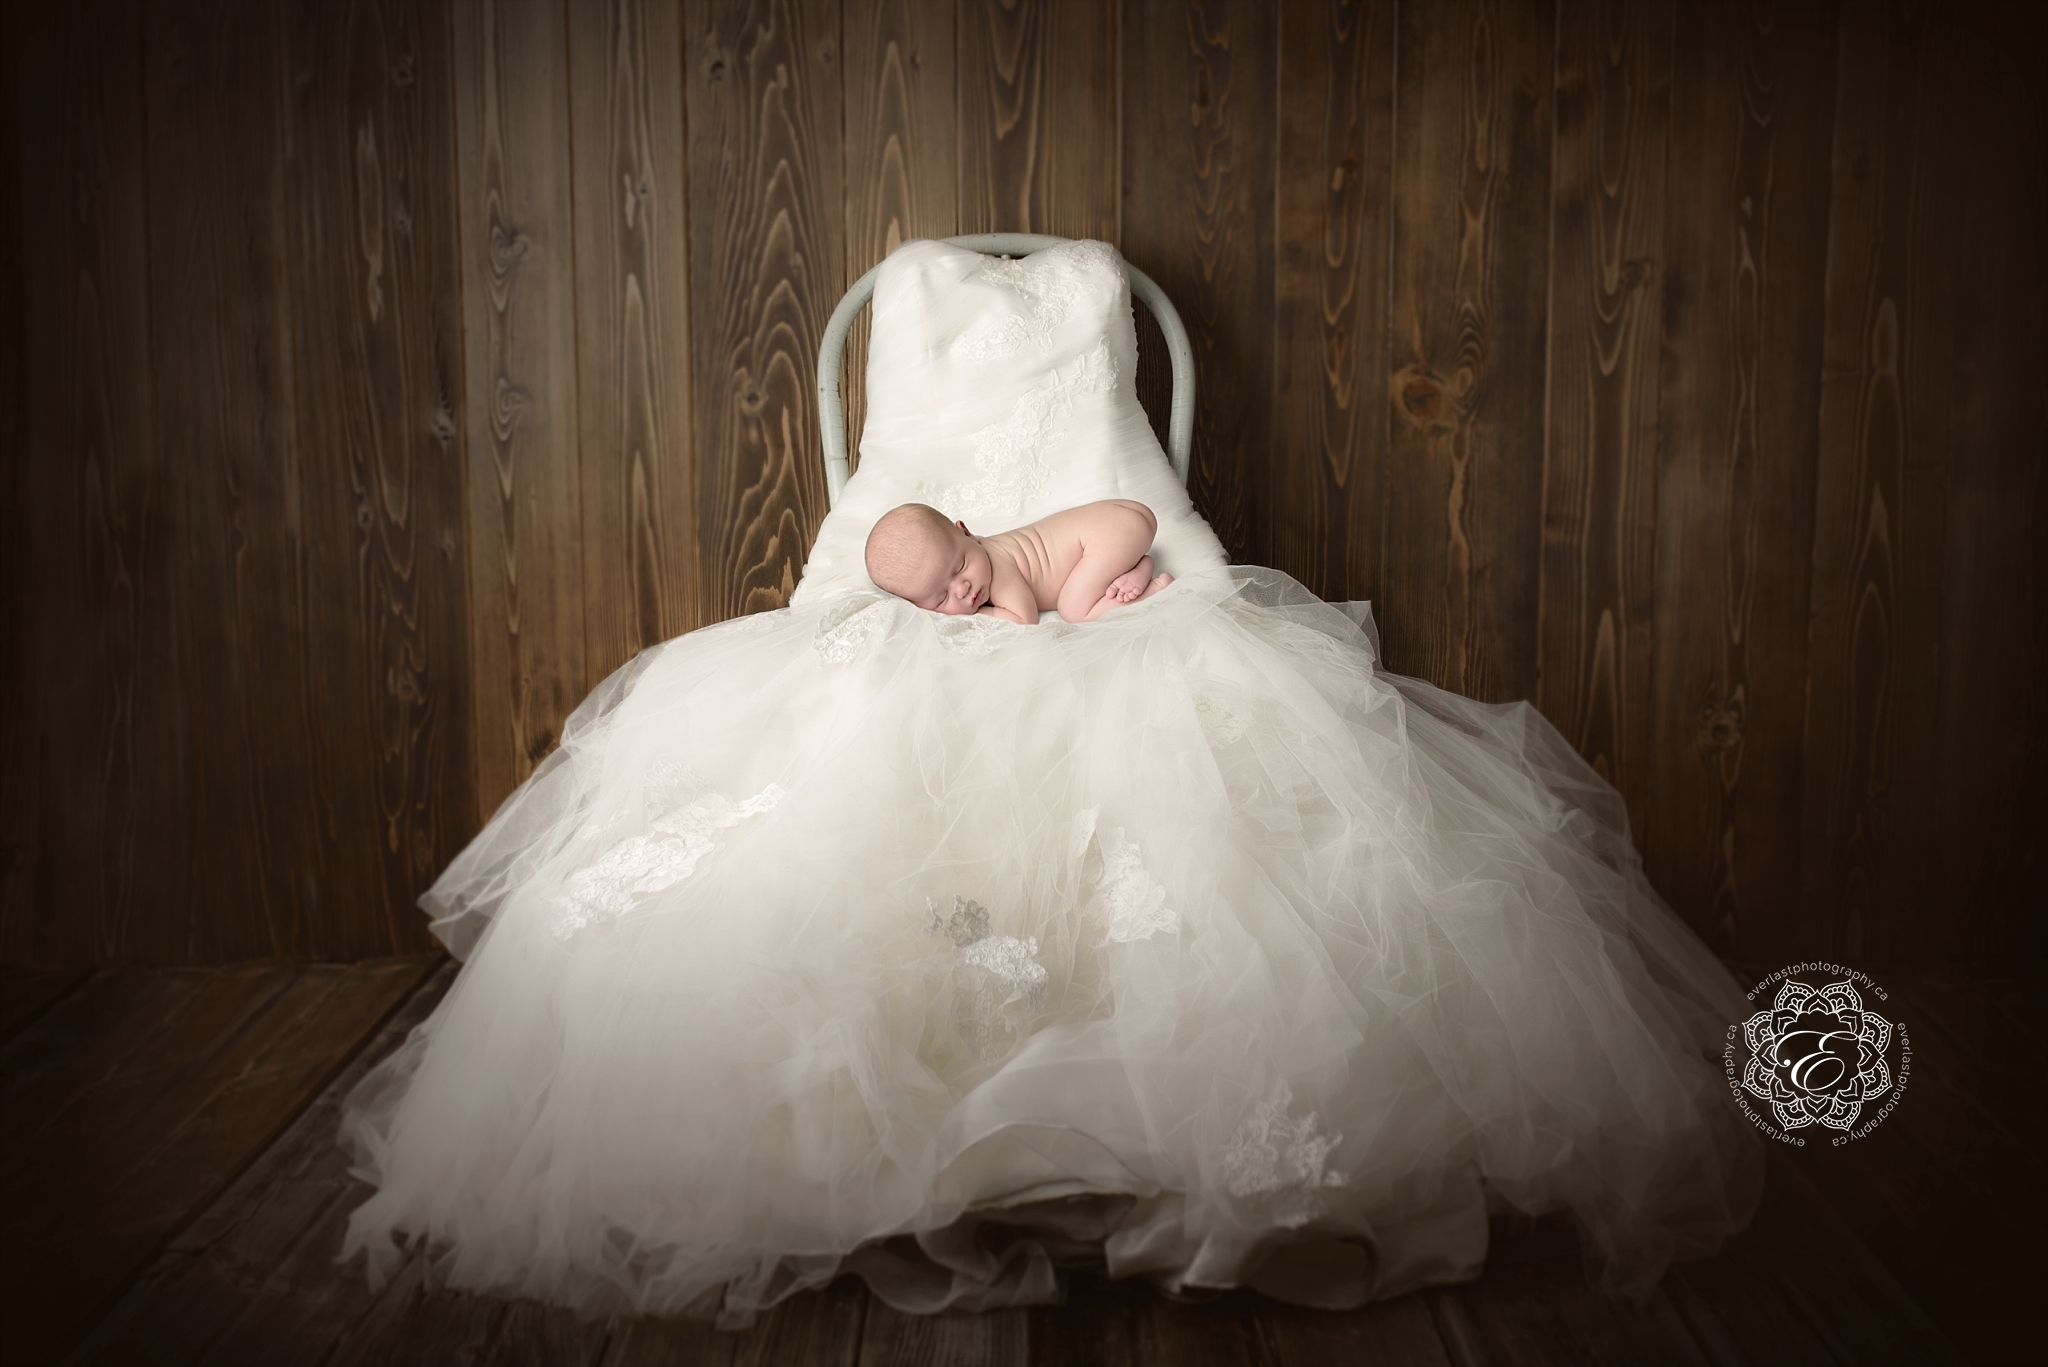 newborn-posed-wedding-dress-edmonton.jpg